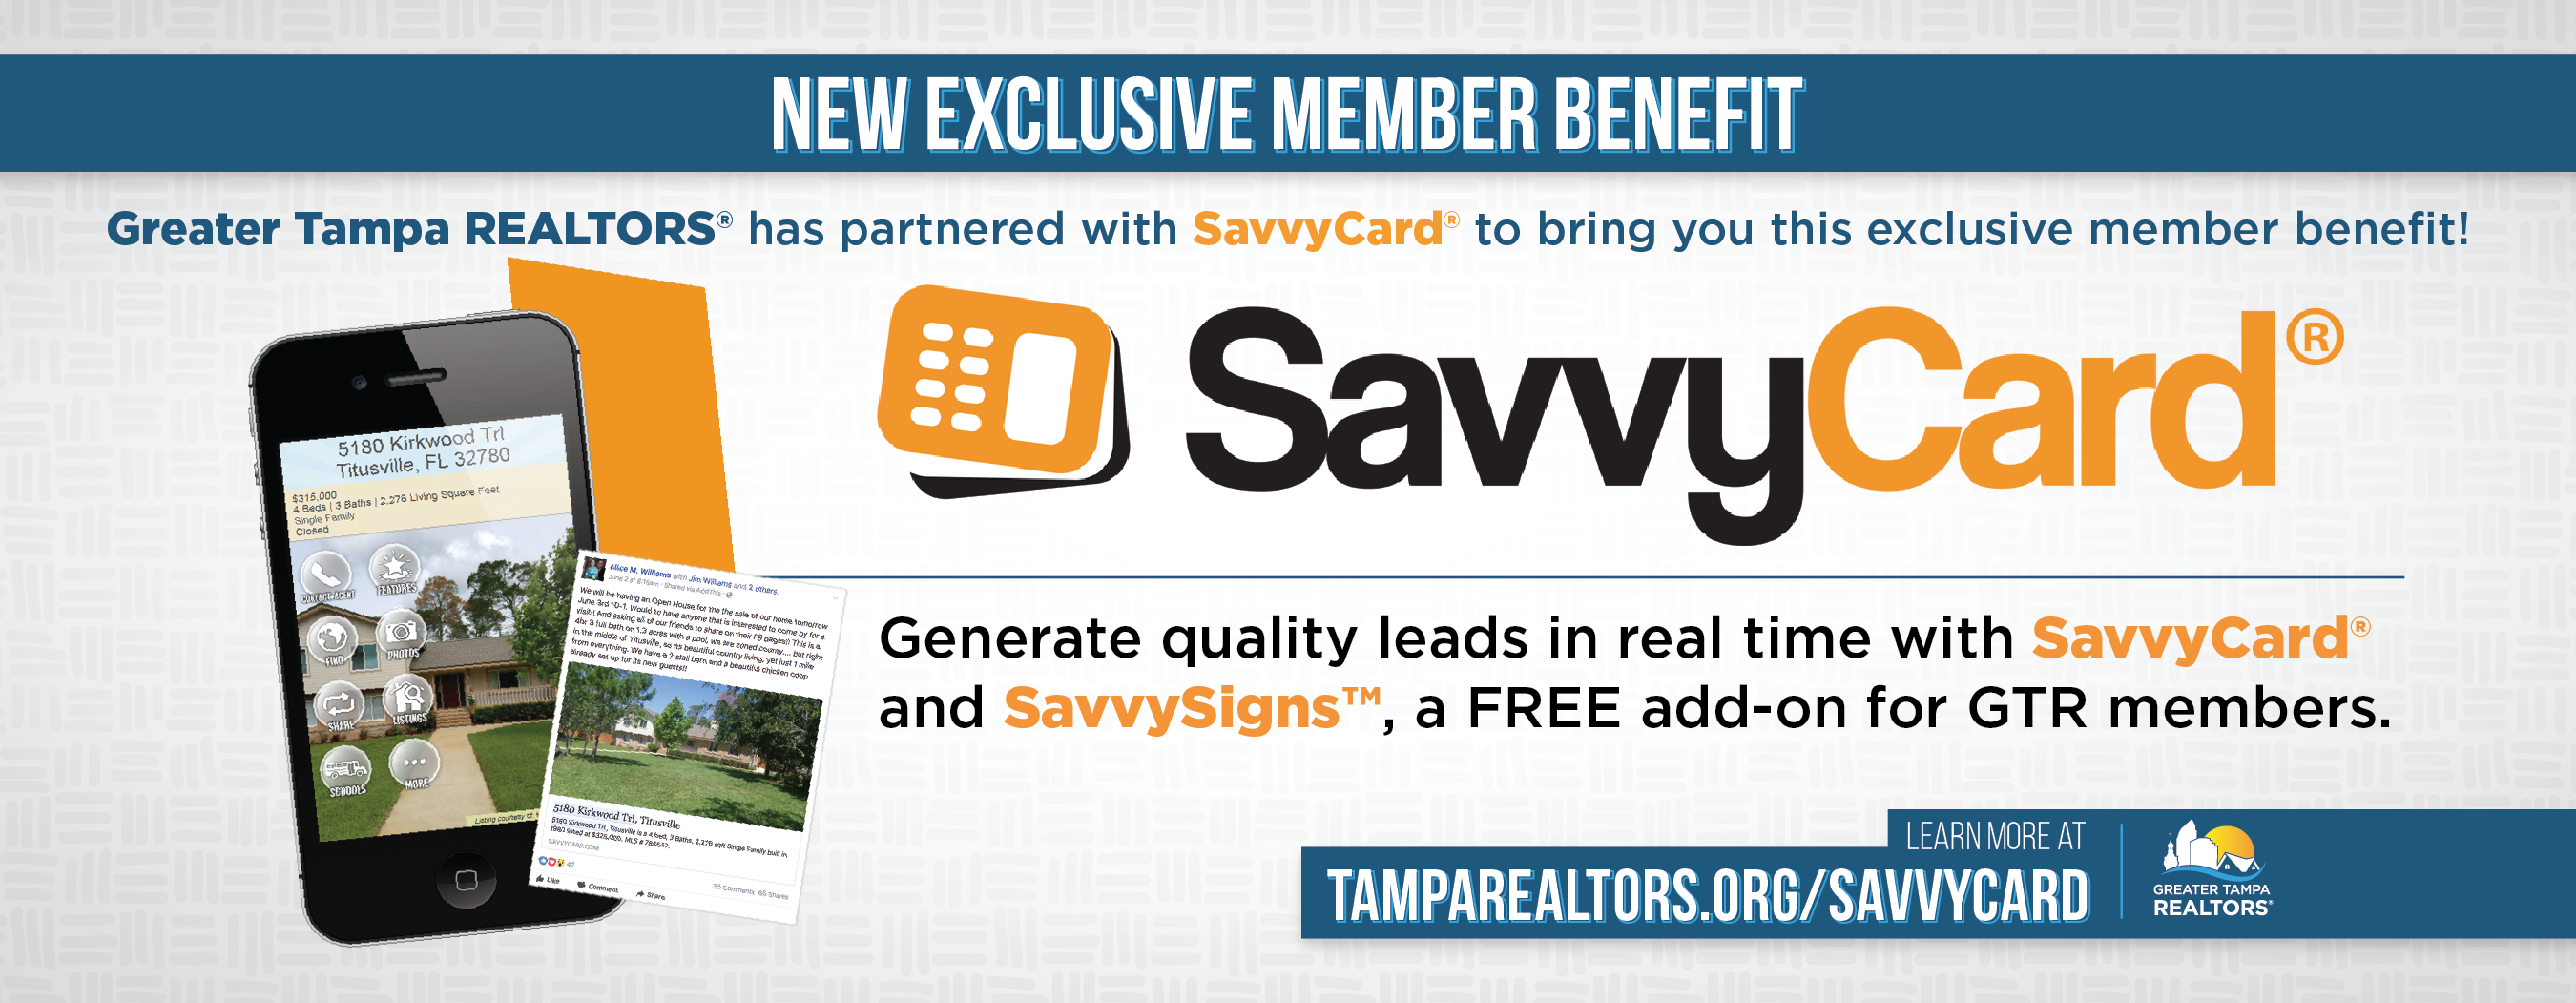 New Exclusive Member Benefit: SavvyCard